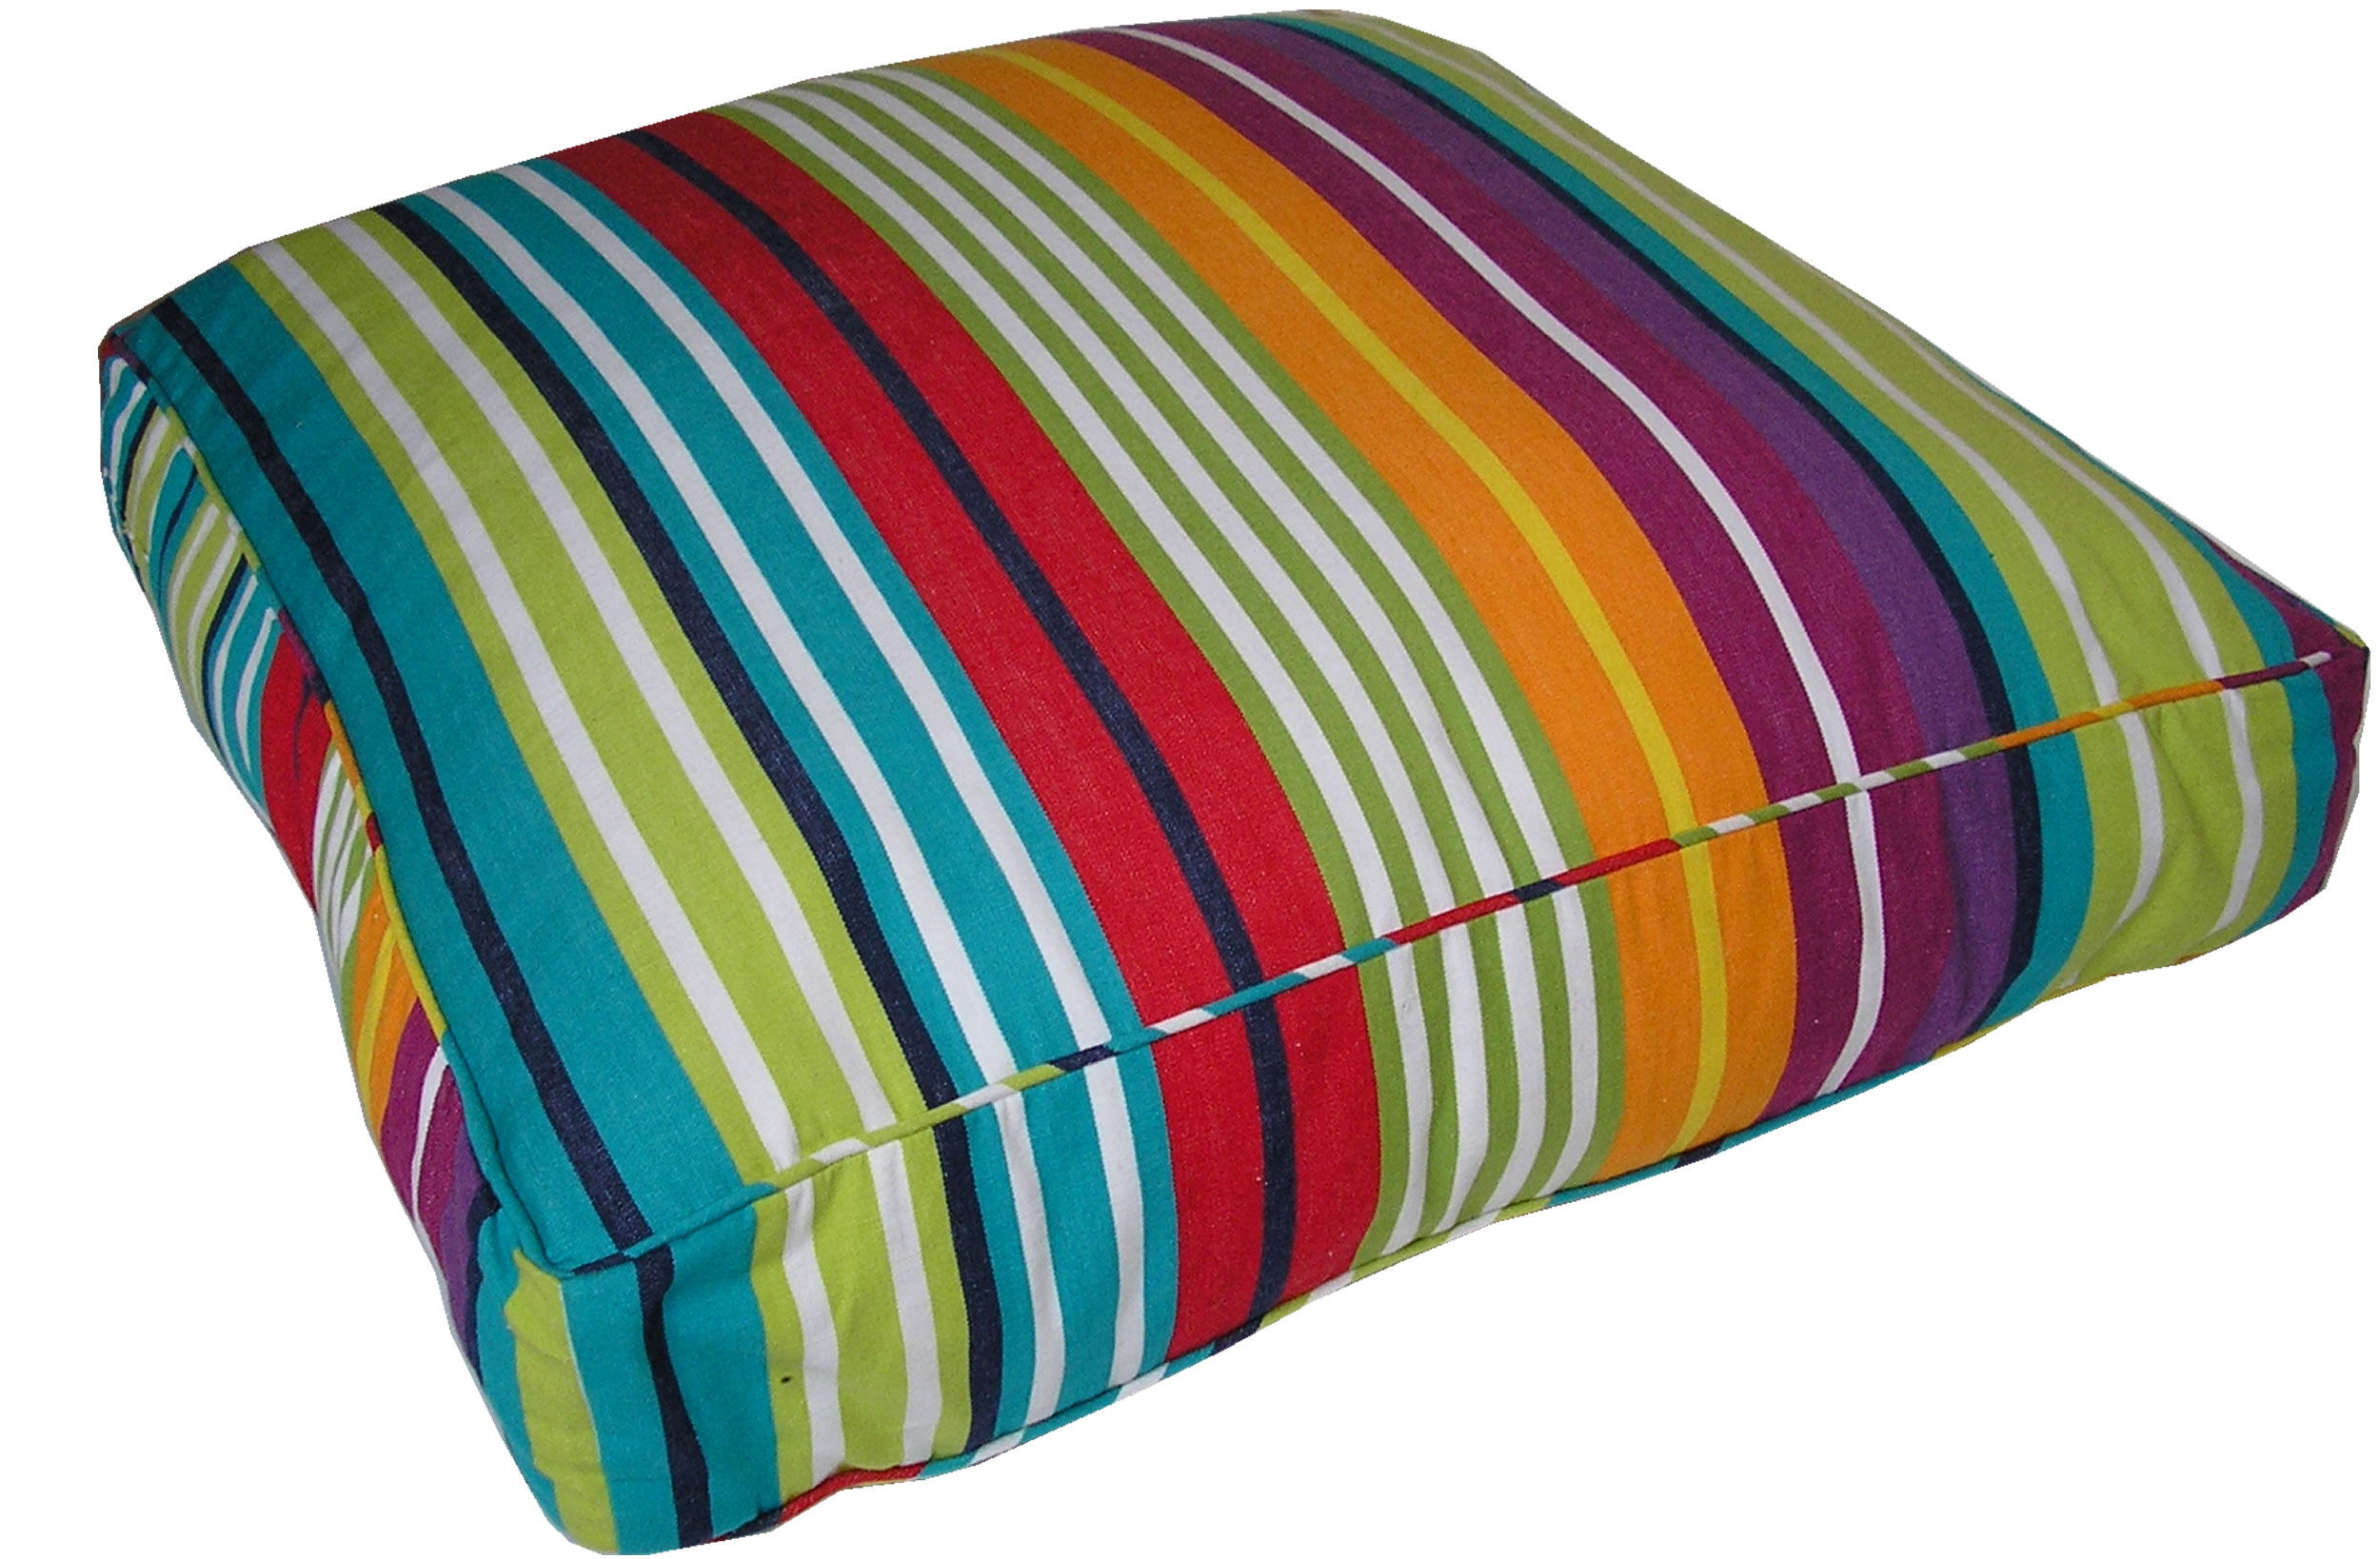 Rainbow Striped Floor Cushions